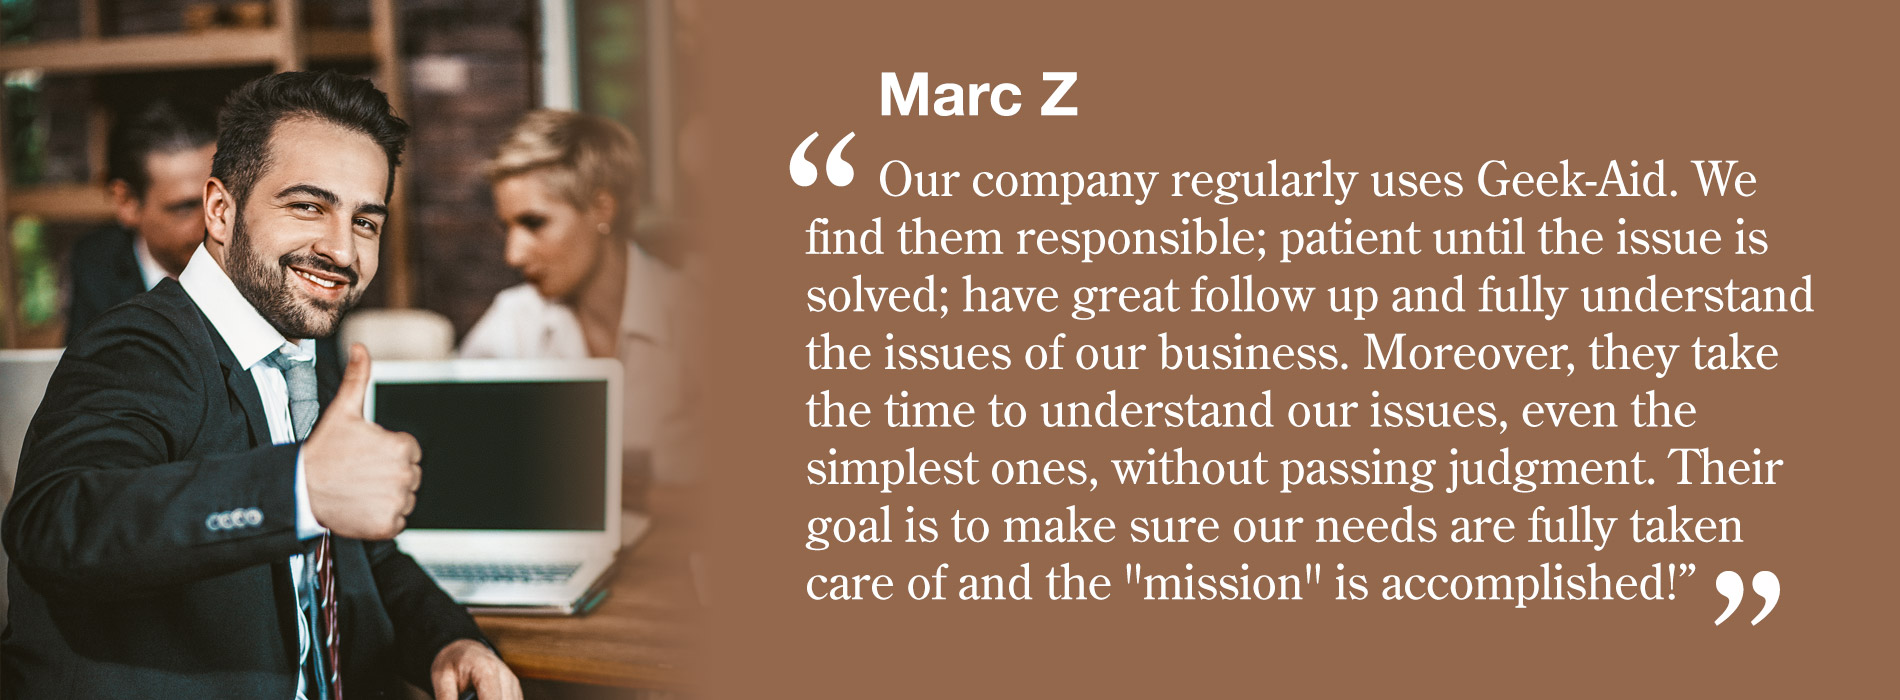 Marc Z - Our company regularly uses Geek-Aid. We find them responsible; patient until the issue is solved; have great follow up and fully understand the issues of our business. Moreover, they take the time to understand our issues, even the simplest ones, without passing judgment. Their goal is to make sure our needs are fully taken care of and the 'mission' is accomplished!""